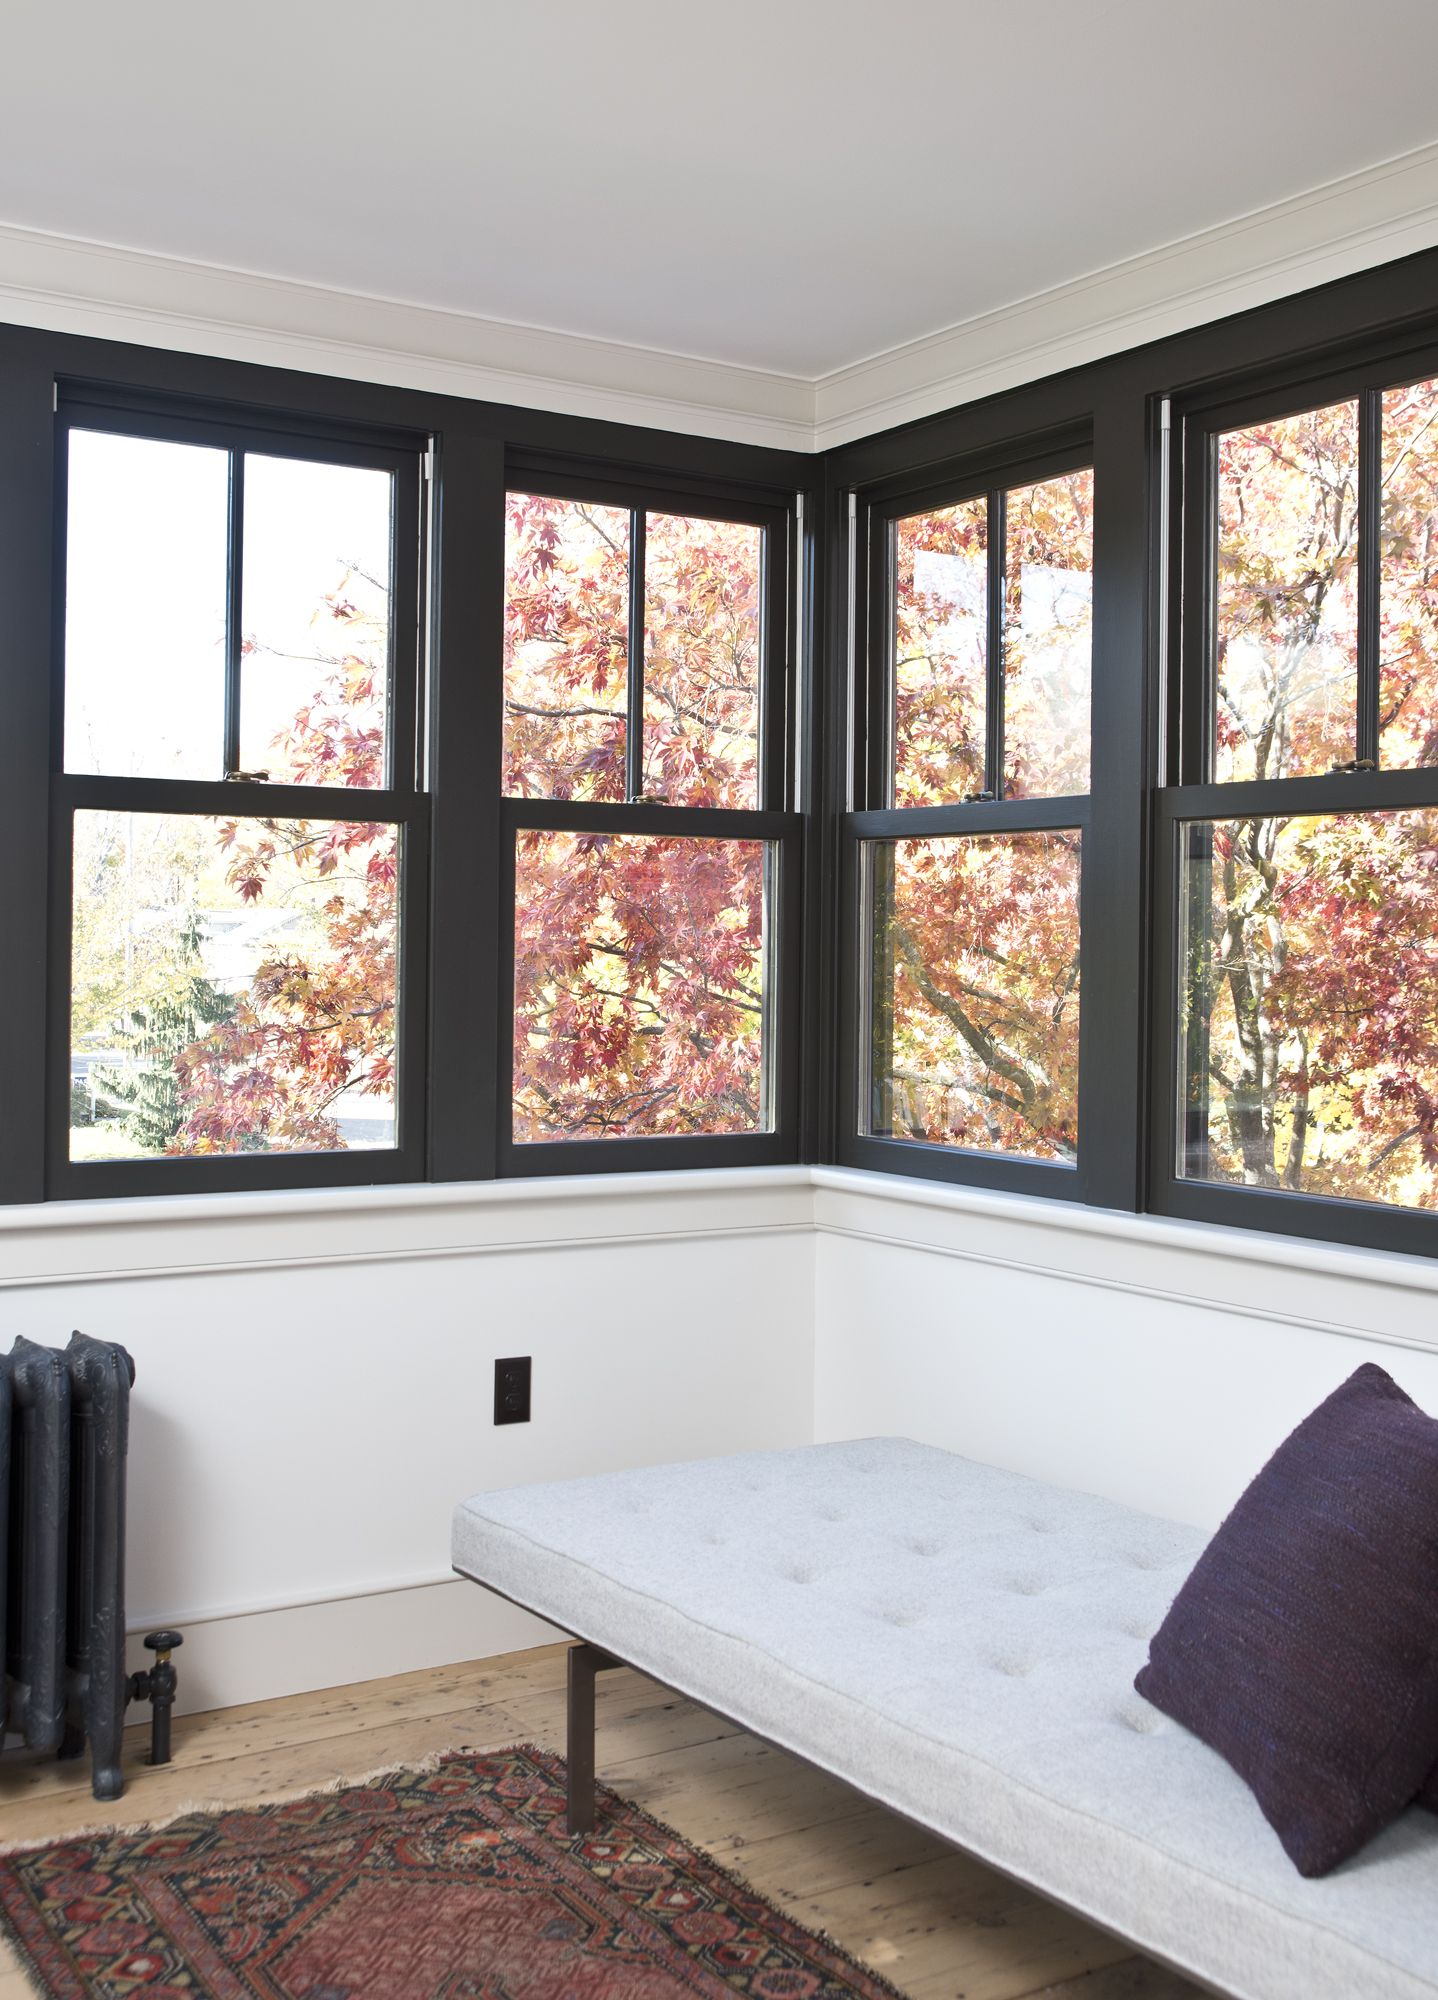 Keeping Things Exciting Black Two Over One Windows Are An Unexpected Modern Element In A Historic Home Renovation